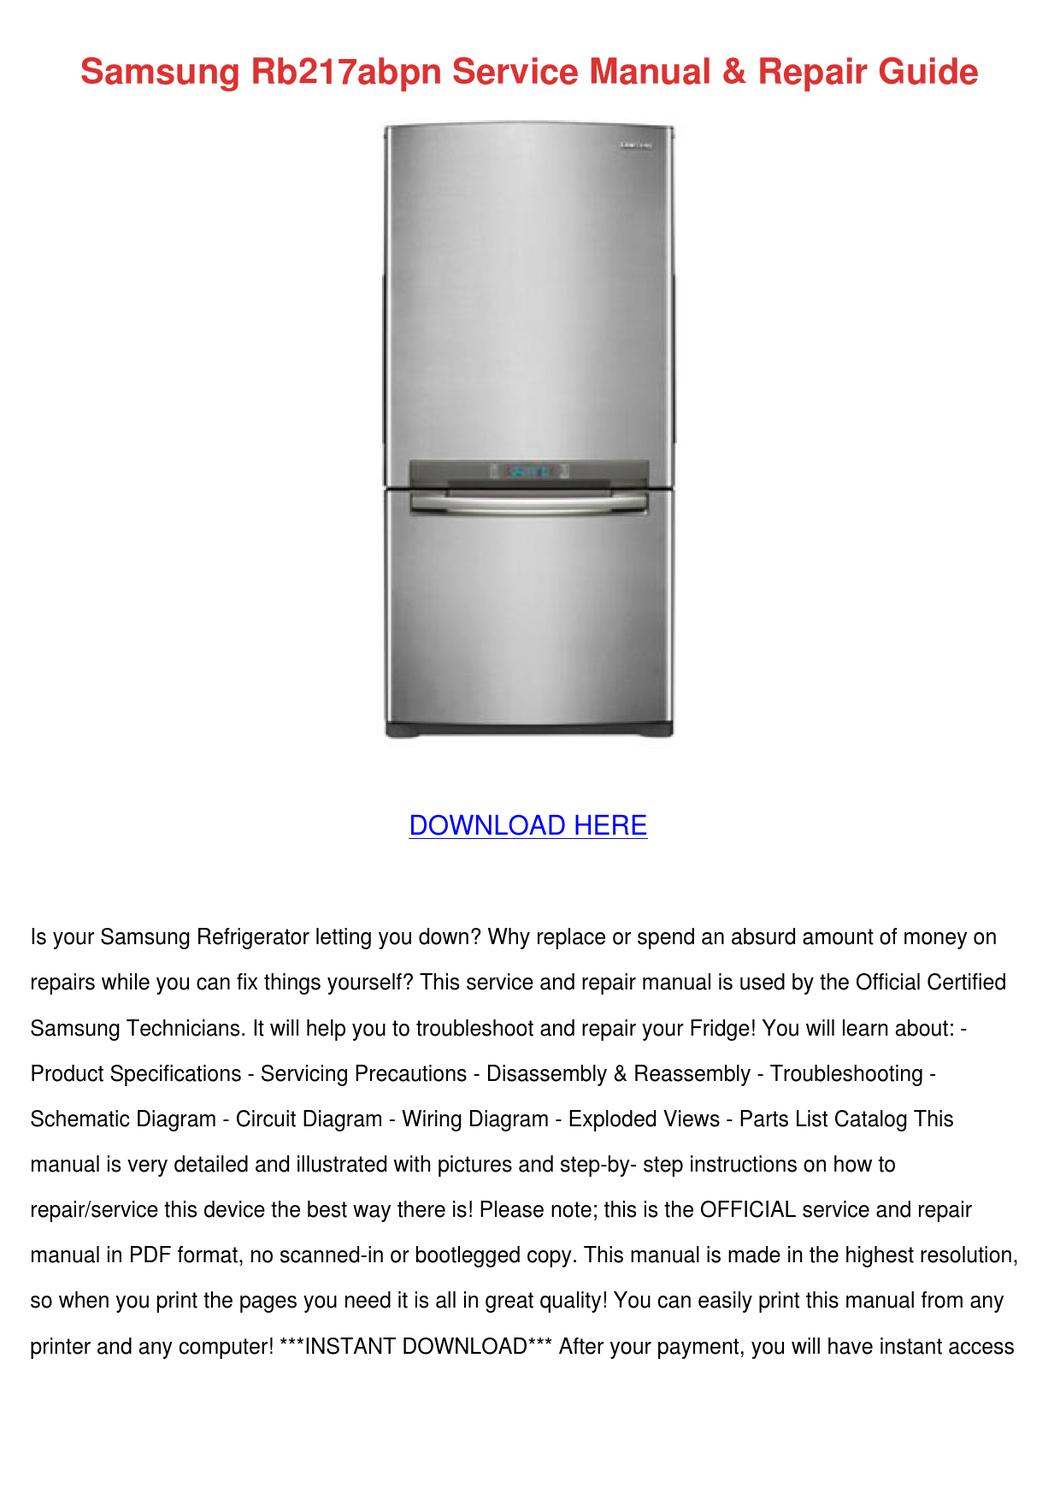 Samsung Rb217abpn Service Manual Repair Guide by SterlingSavoy - issuu